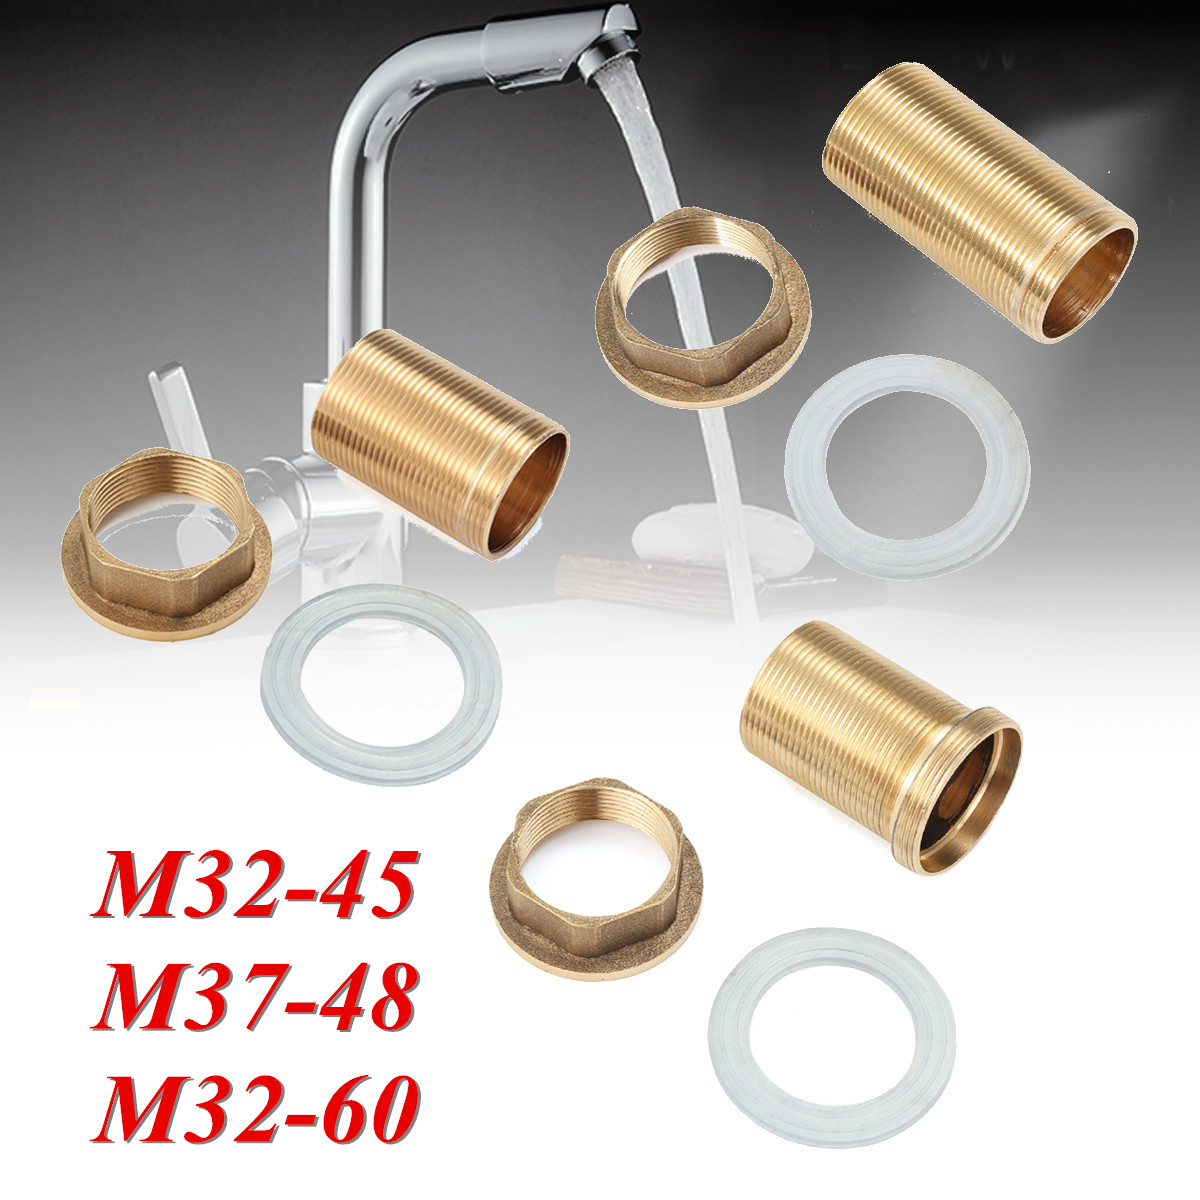 Copper Home Kitchen Basin Mixer Tap Repair Fitting Kit Faucet Threaded Brass Tube Nut Washer Parts Kitchen Faucet Accessories